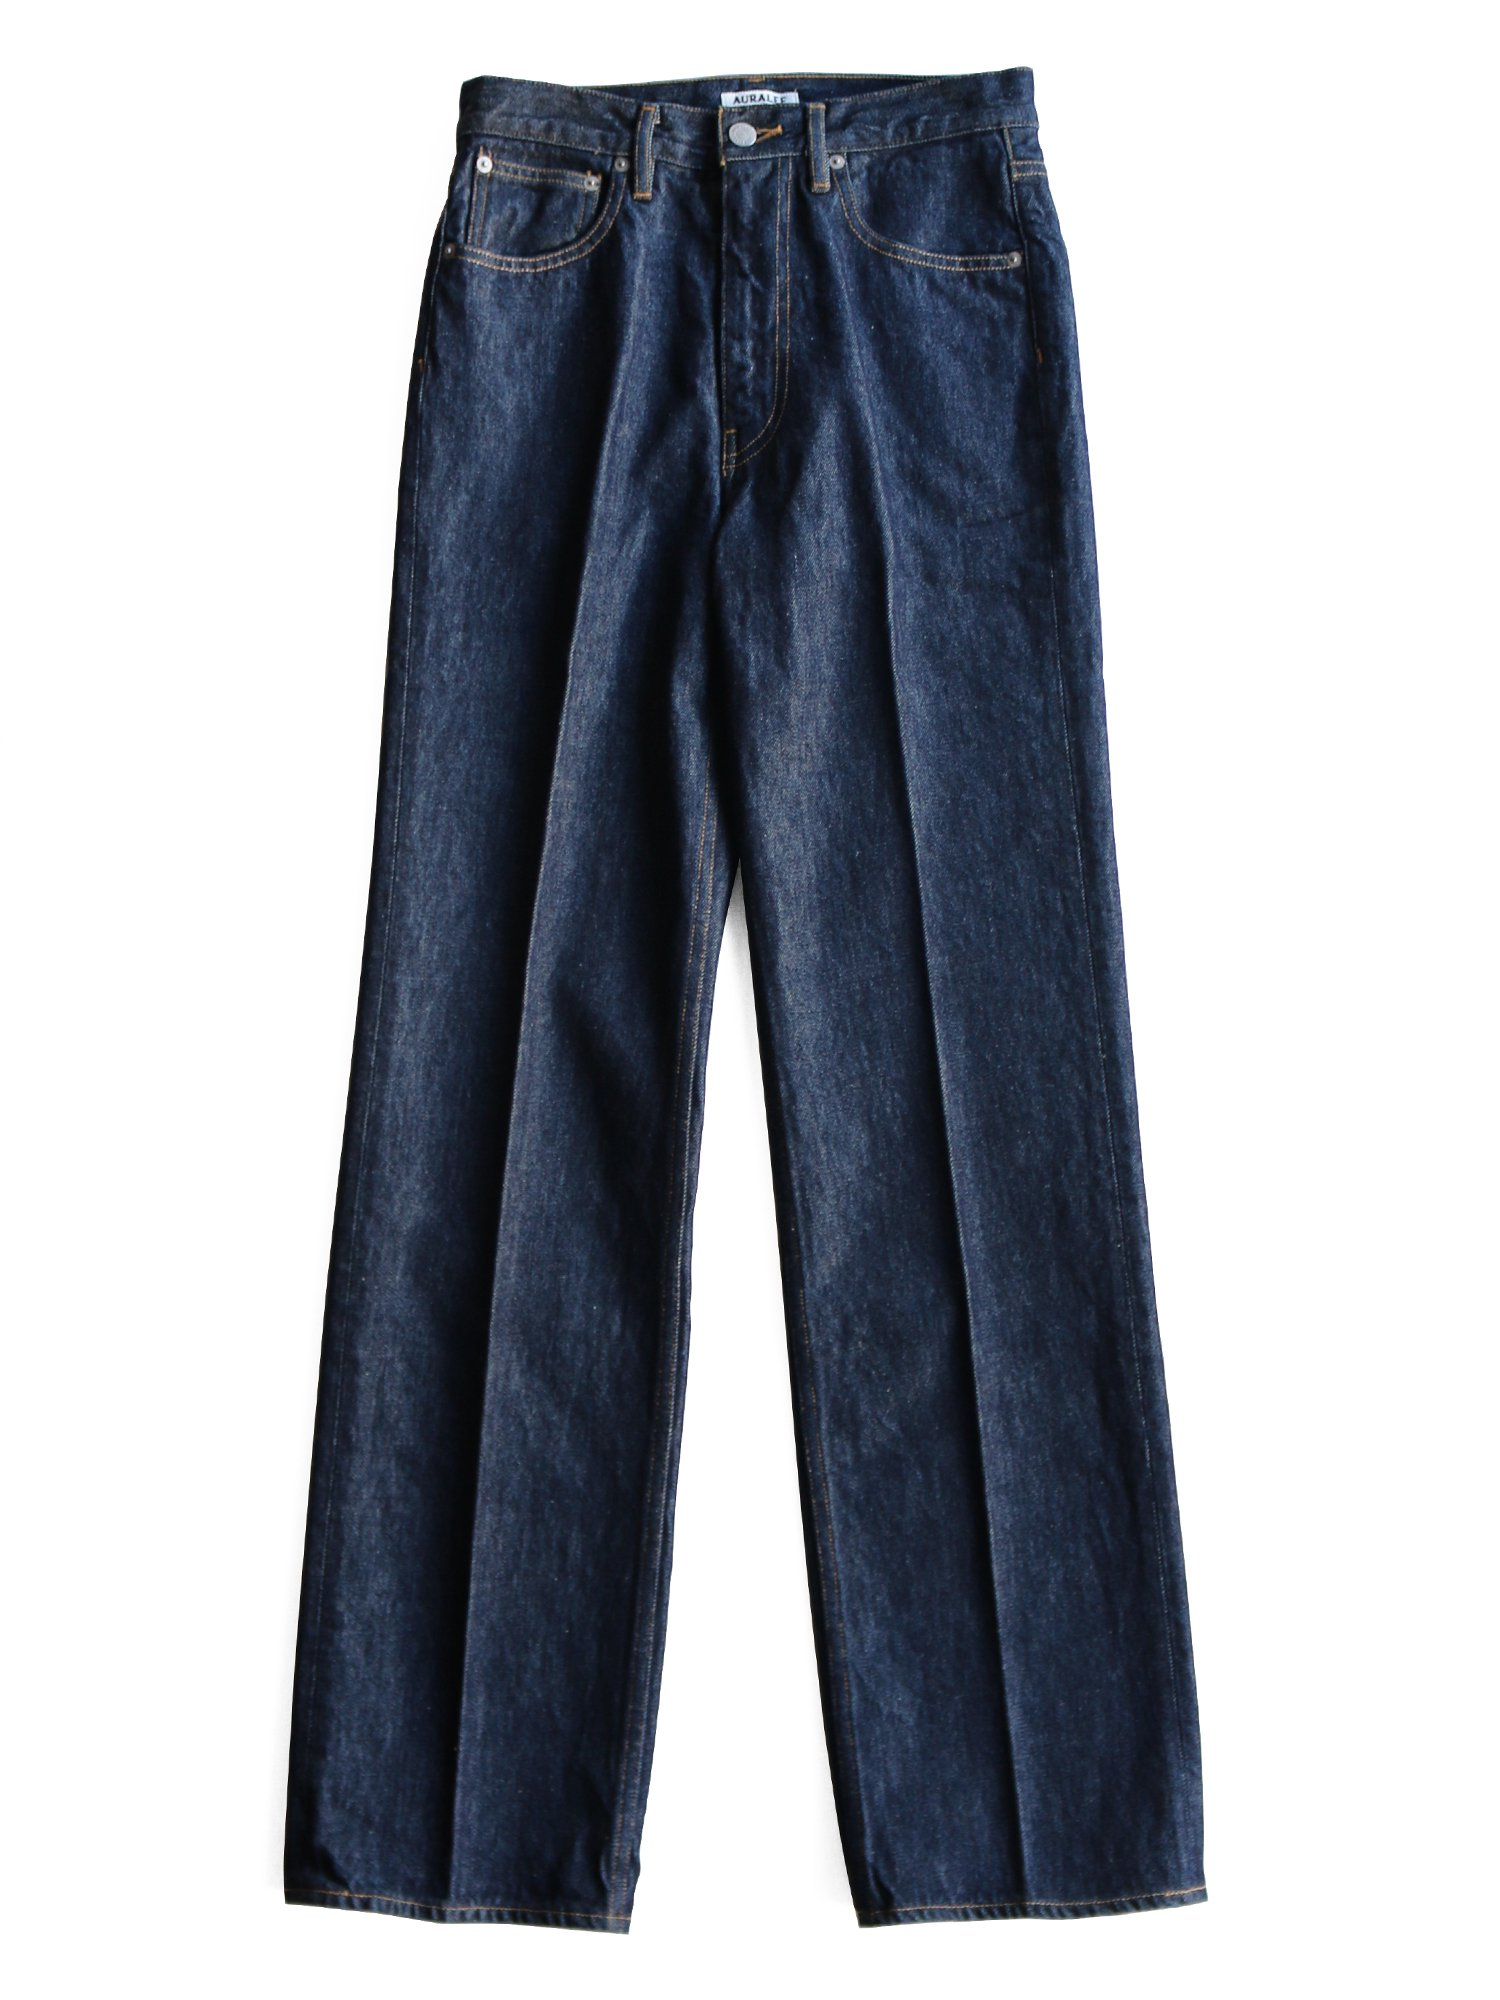 -19AW- 【AURALEE women's】HARD TWIST DENIM 5P PANTS (INDIGO)_main